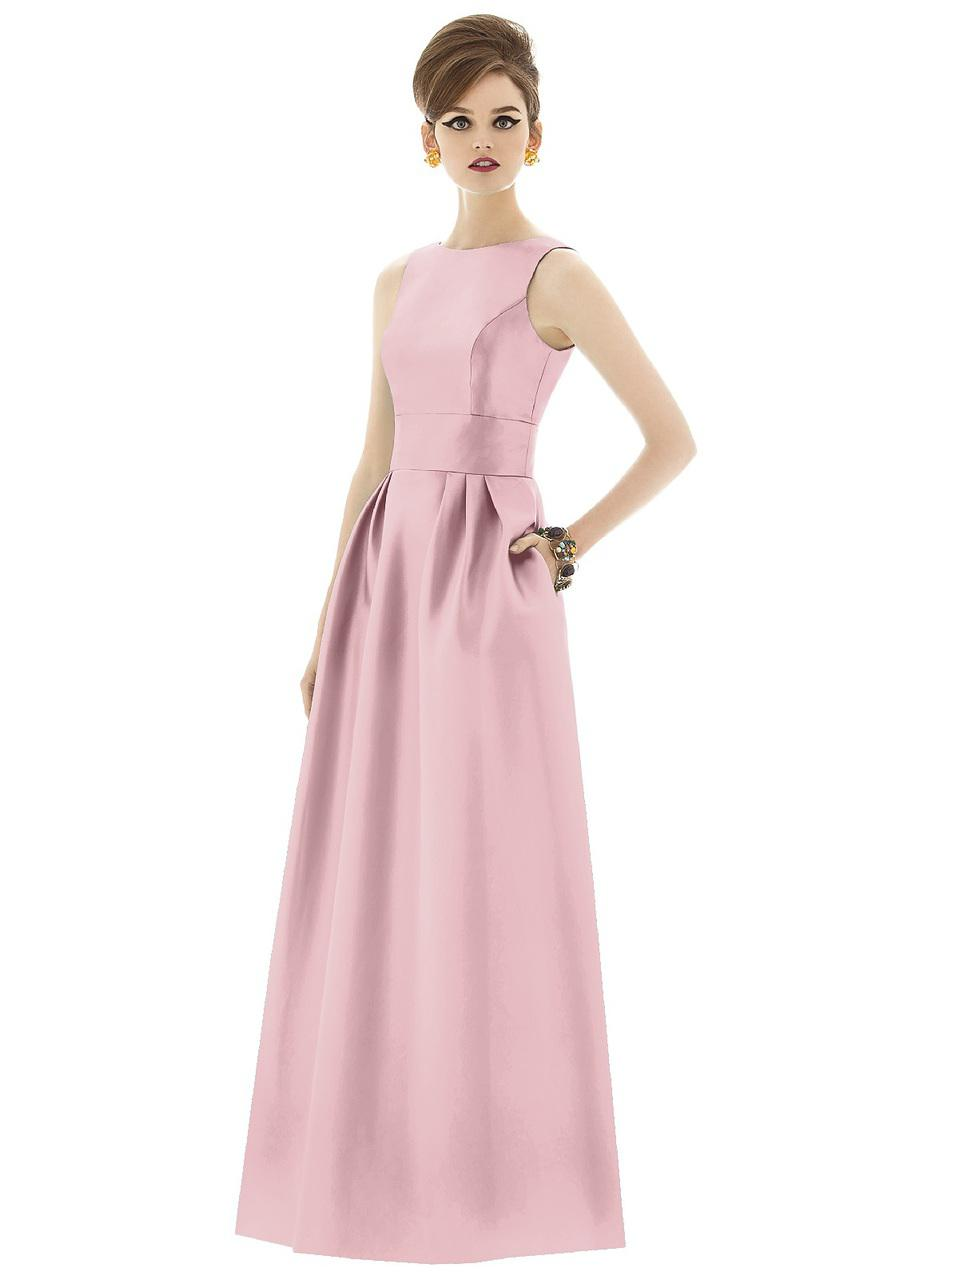 Lyst - Alfred Sung D Bridesmaid Dress In Blossom in Pink - Save 13%